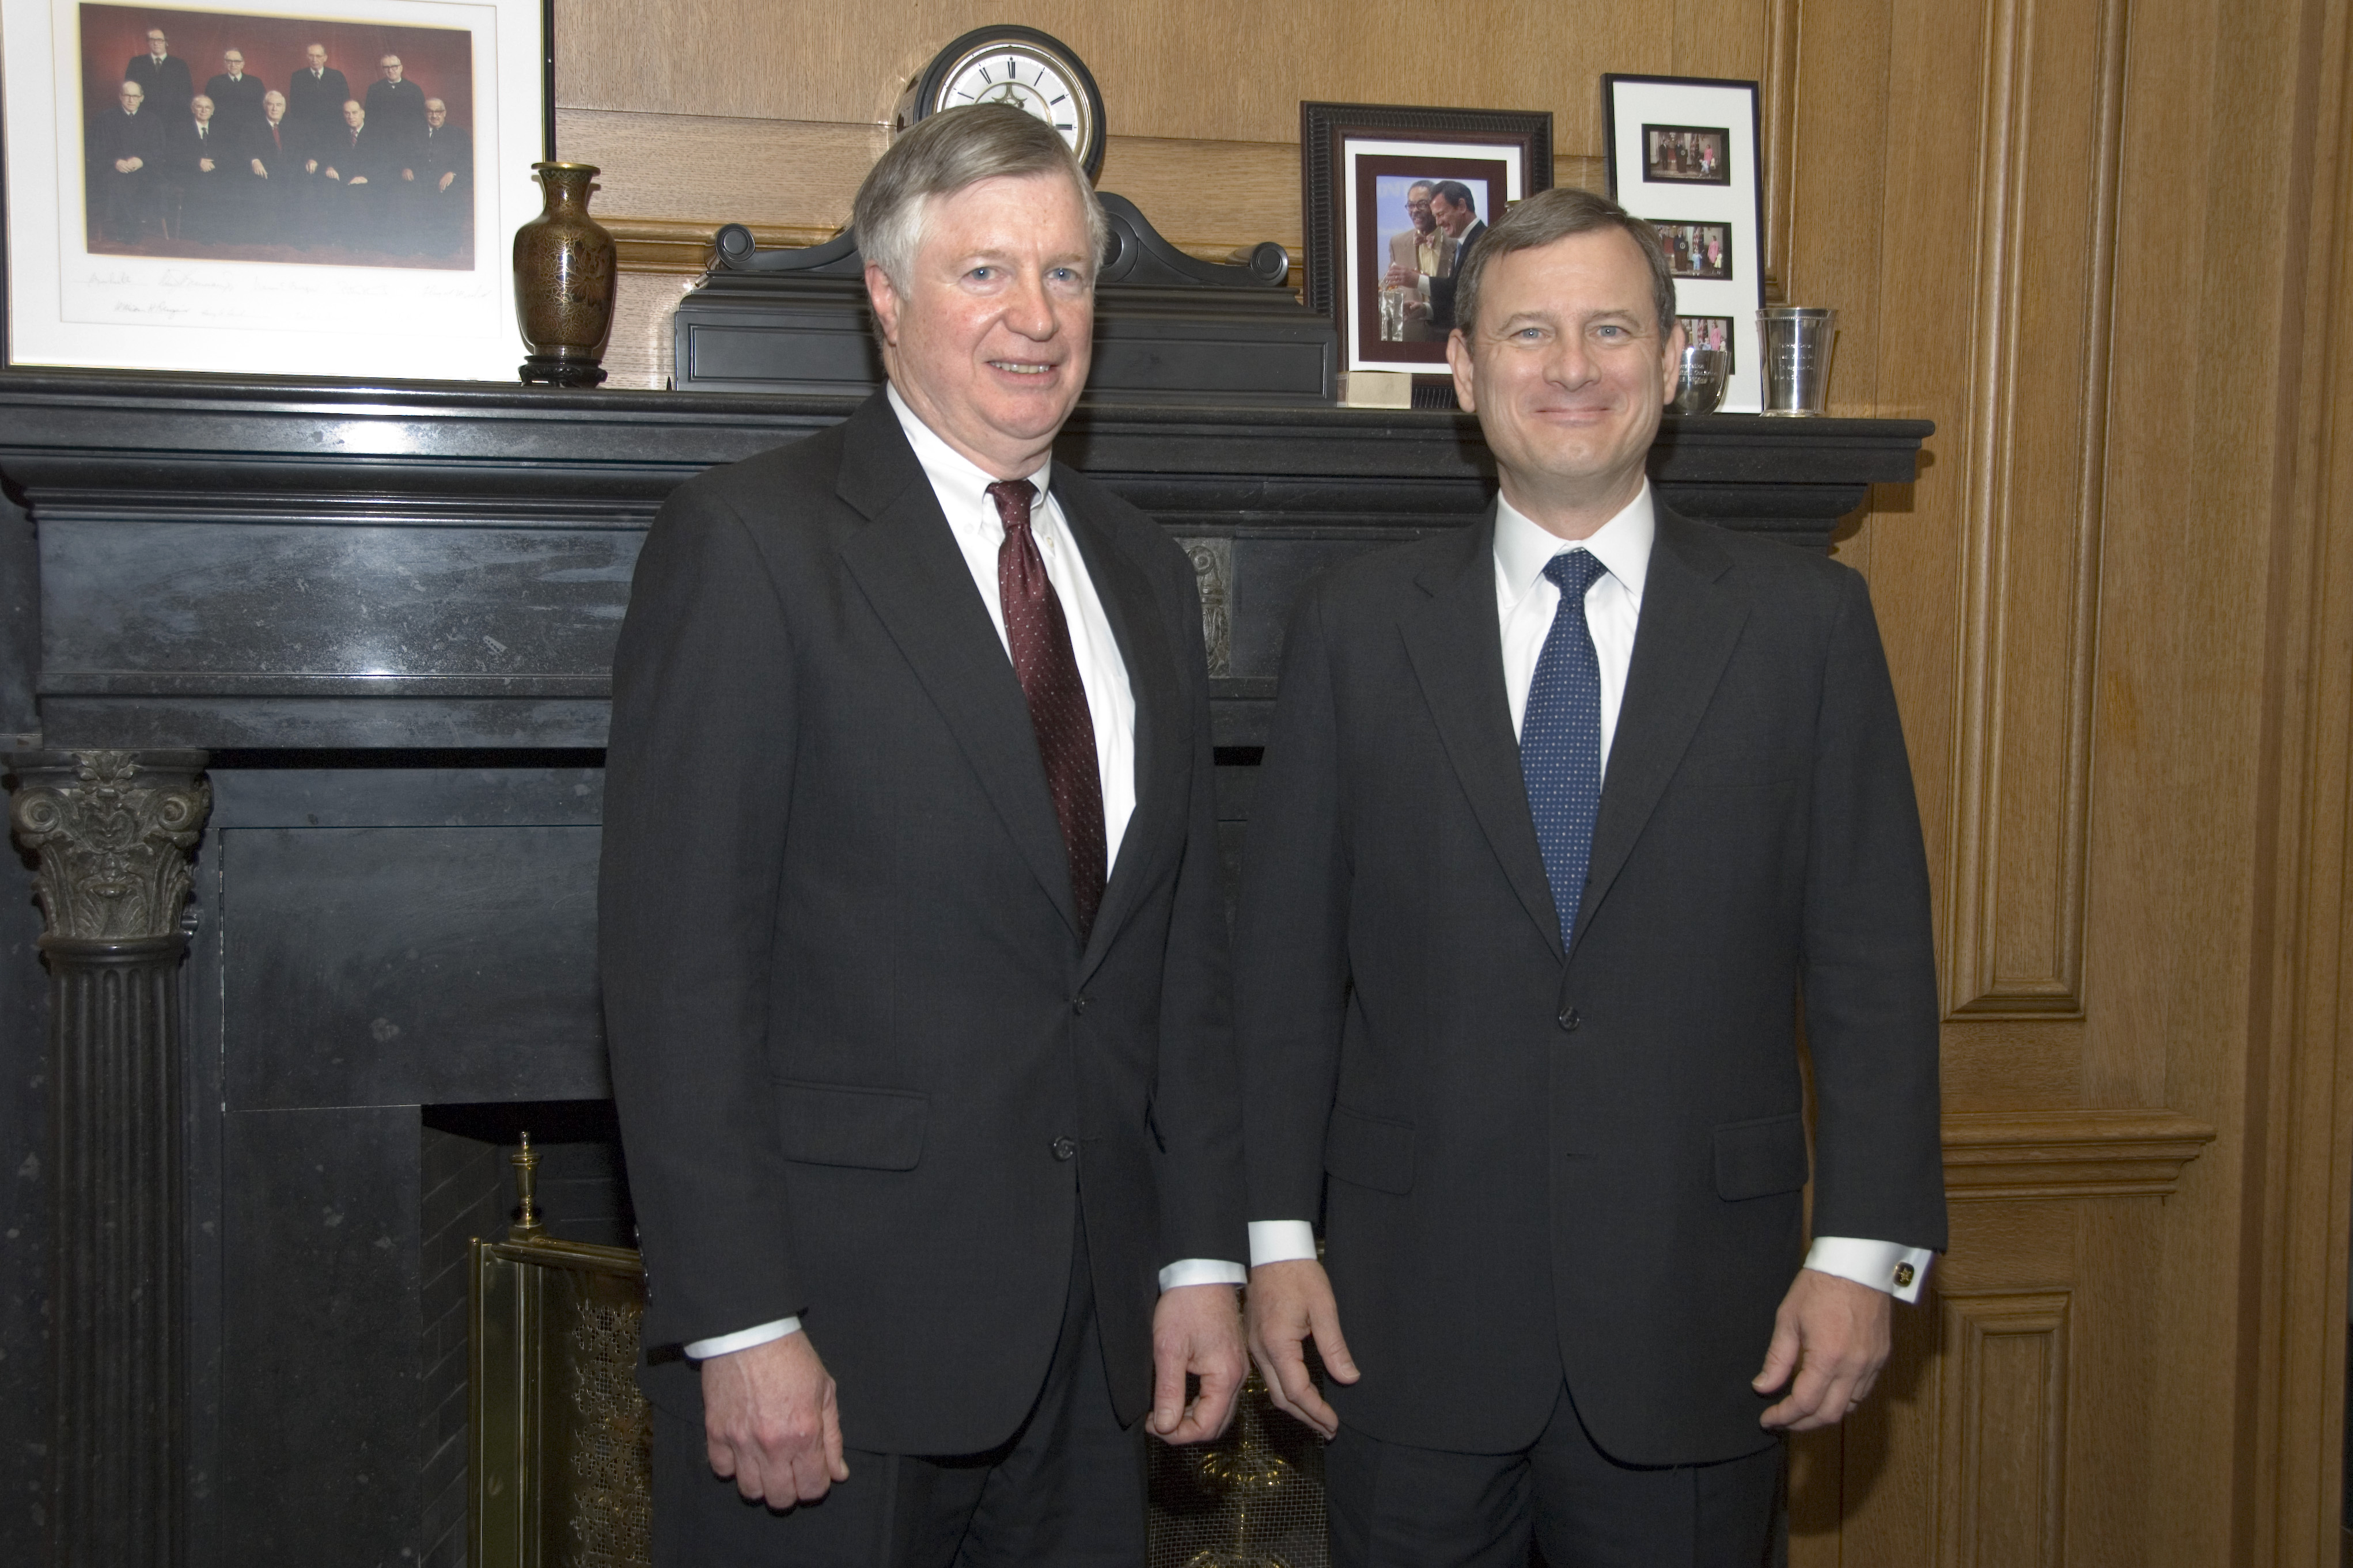 Tom Loftus '68 with Chief Justice